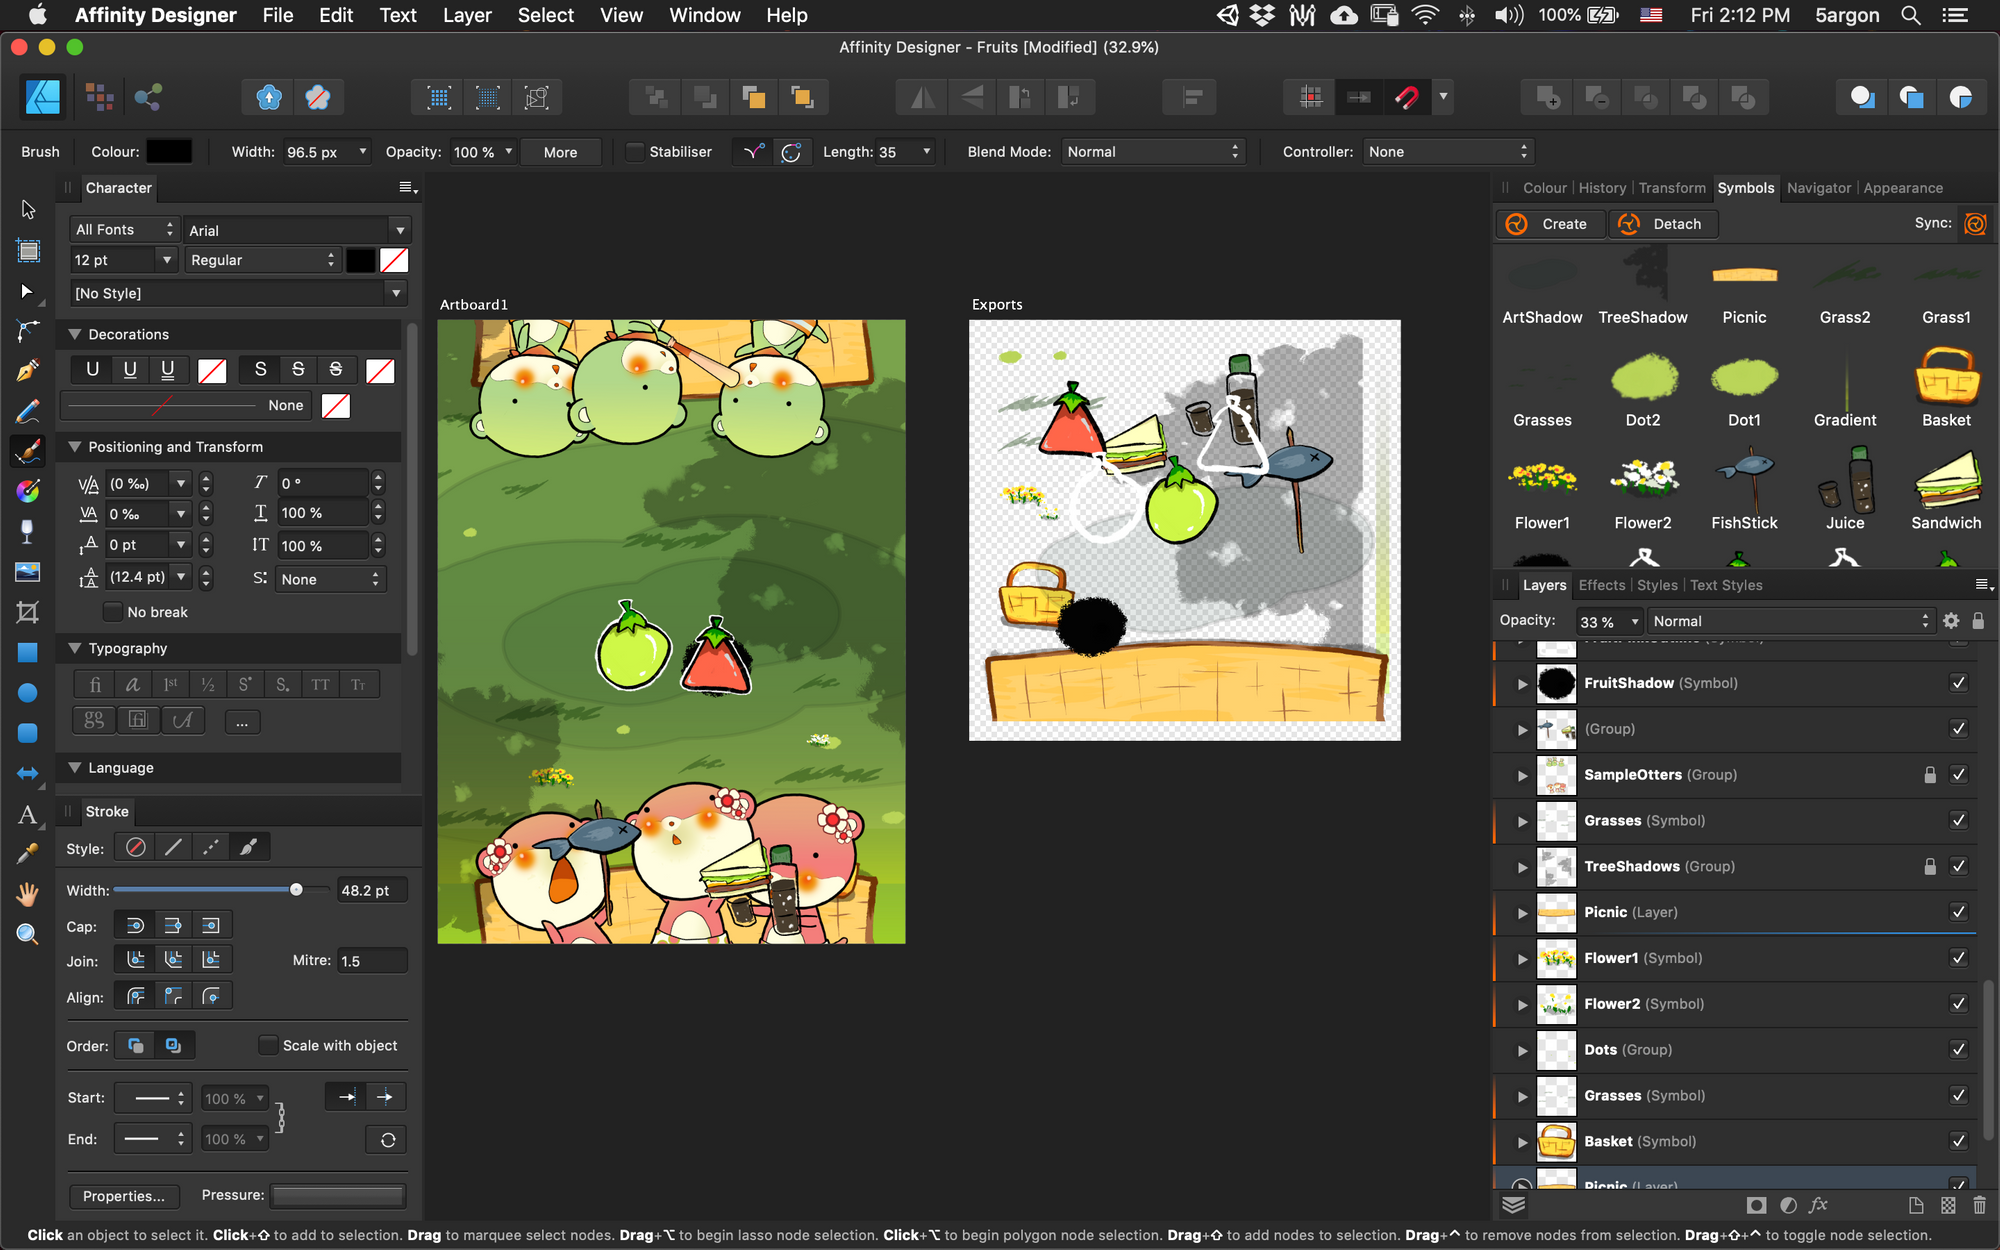 Unity 2D asset pipeline with Affinity Designer